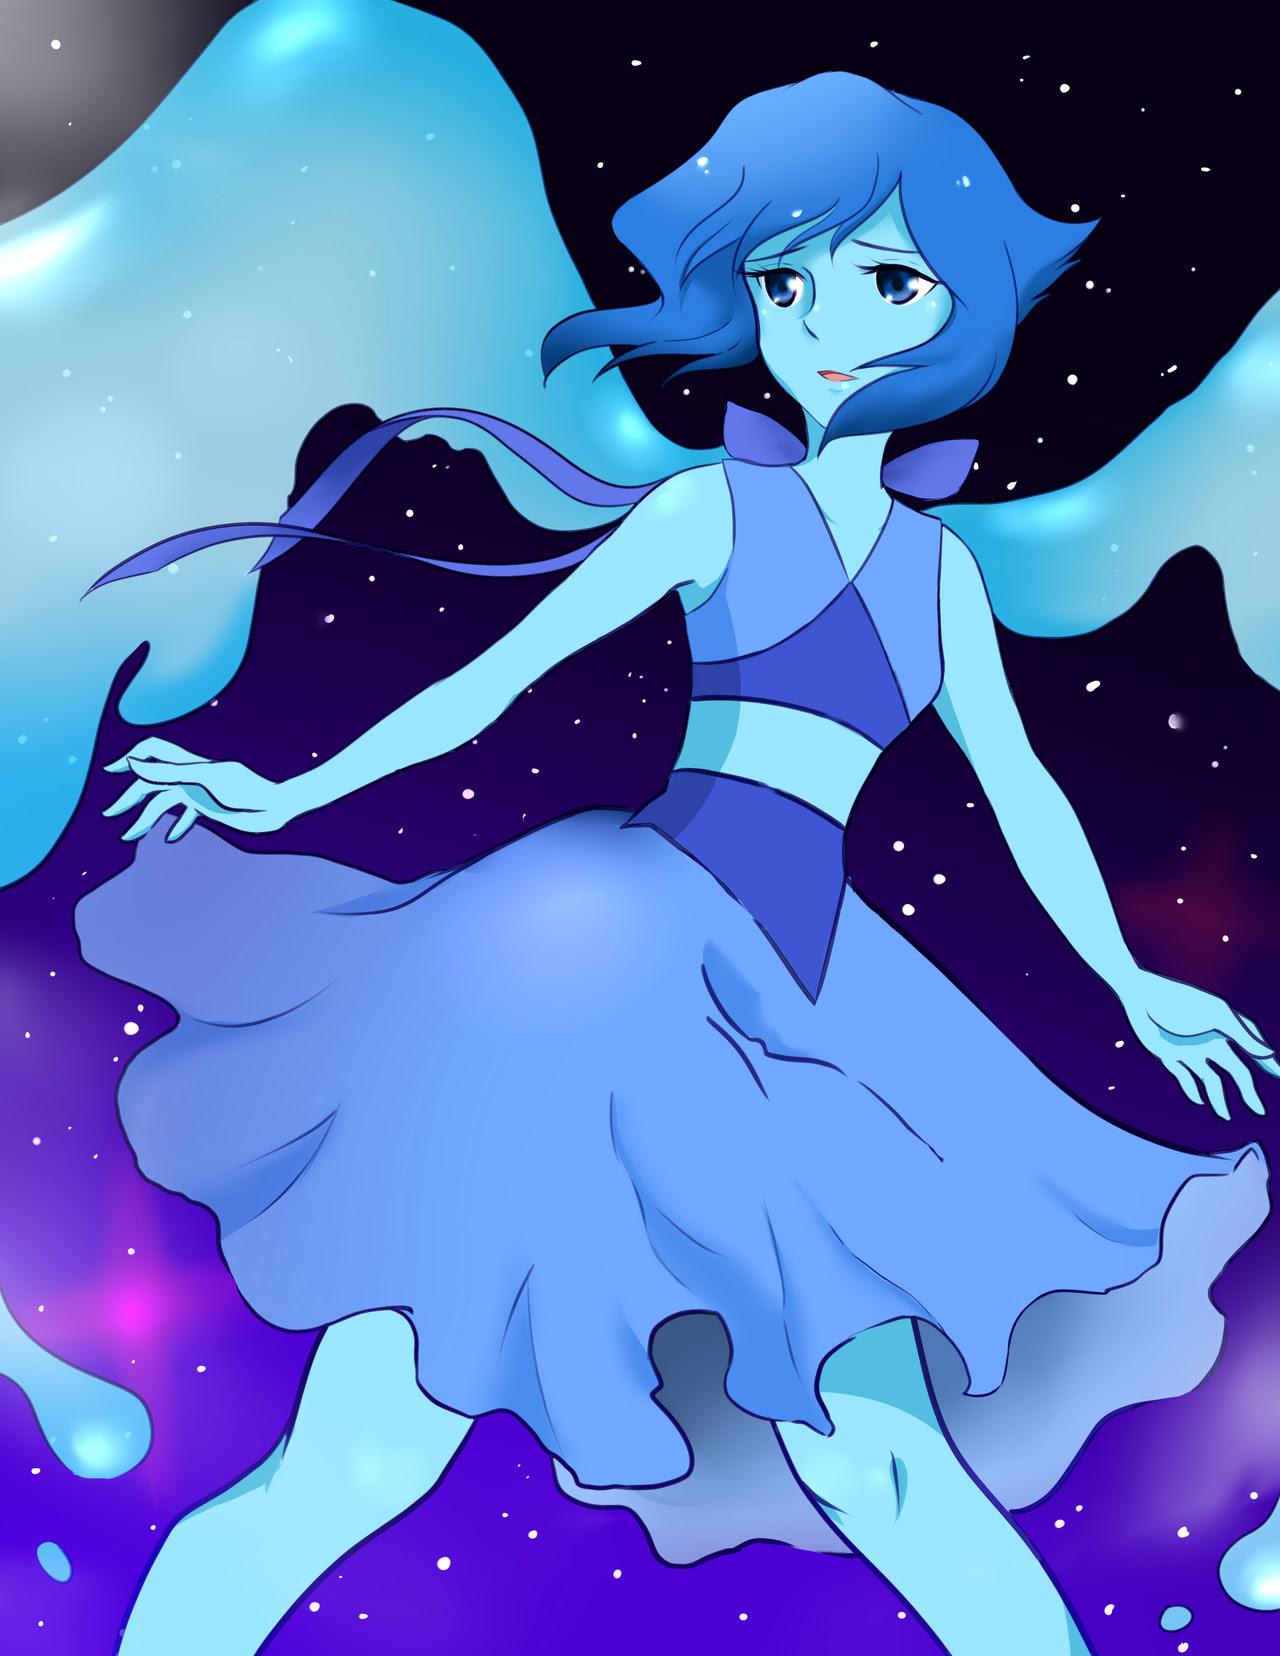 A Lapis Lazuli print I'll be selling at Minicomi and SFU Summer Festival in 2018 :D Please come by those two events in July if you have time! Admissions is free and there will be a ton of cool artists...